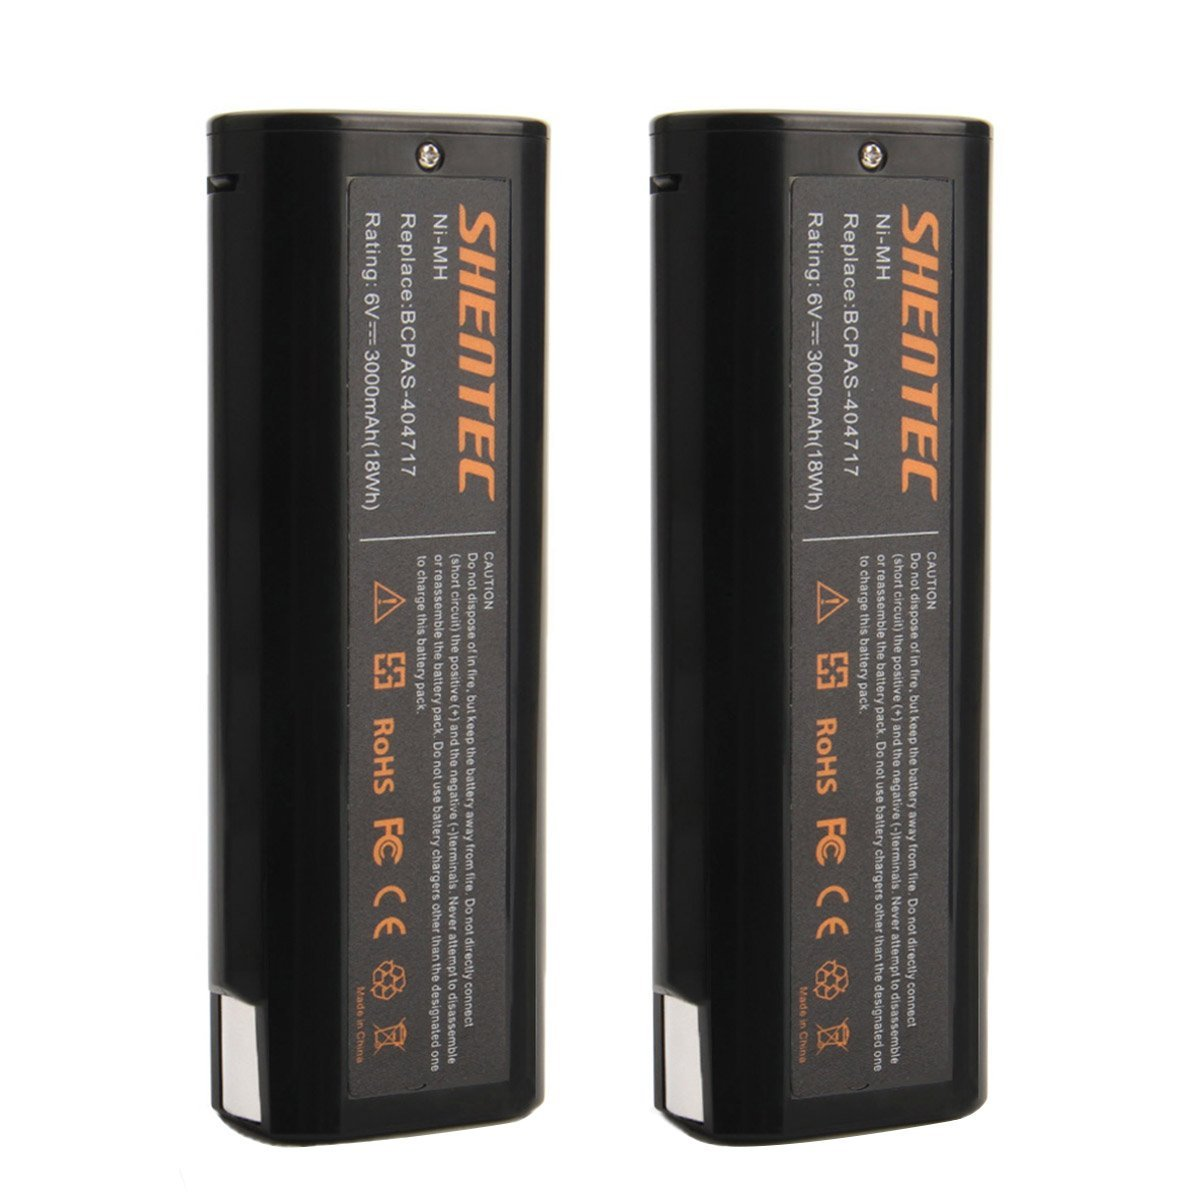 Shentec 2-Pack 3.0Ah 6V Paslode Battery Replace for Paslode 404717 B20544E BCPAS-404717 404400 900400 900420 900421 900600 901000 902000 B20720 CF-325 IM200 F18 IM250 IM250A IM350A PS604N, Ni-MH